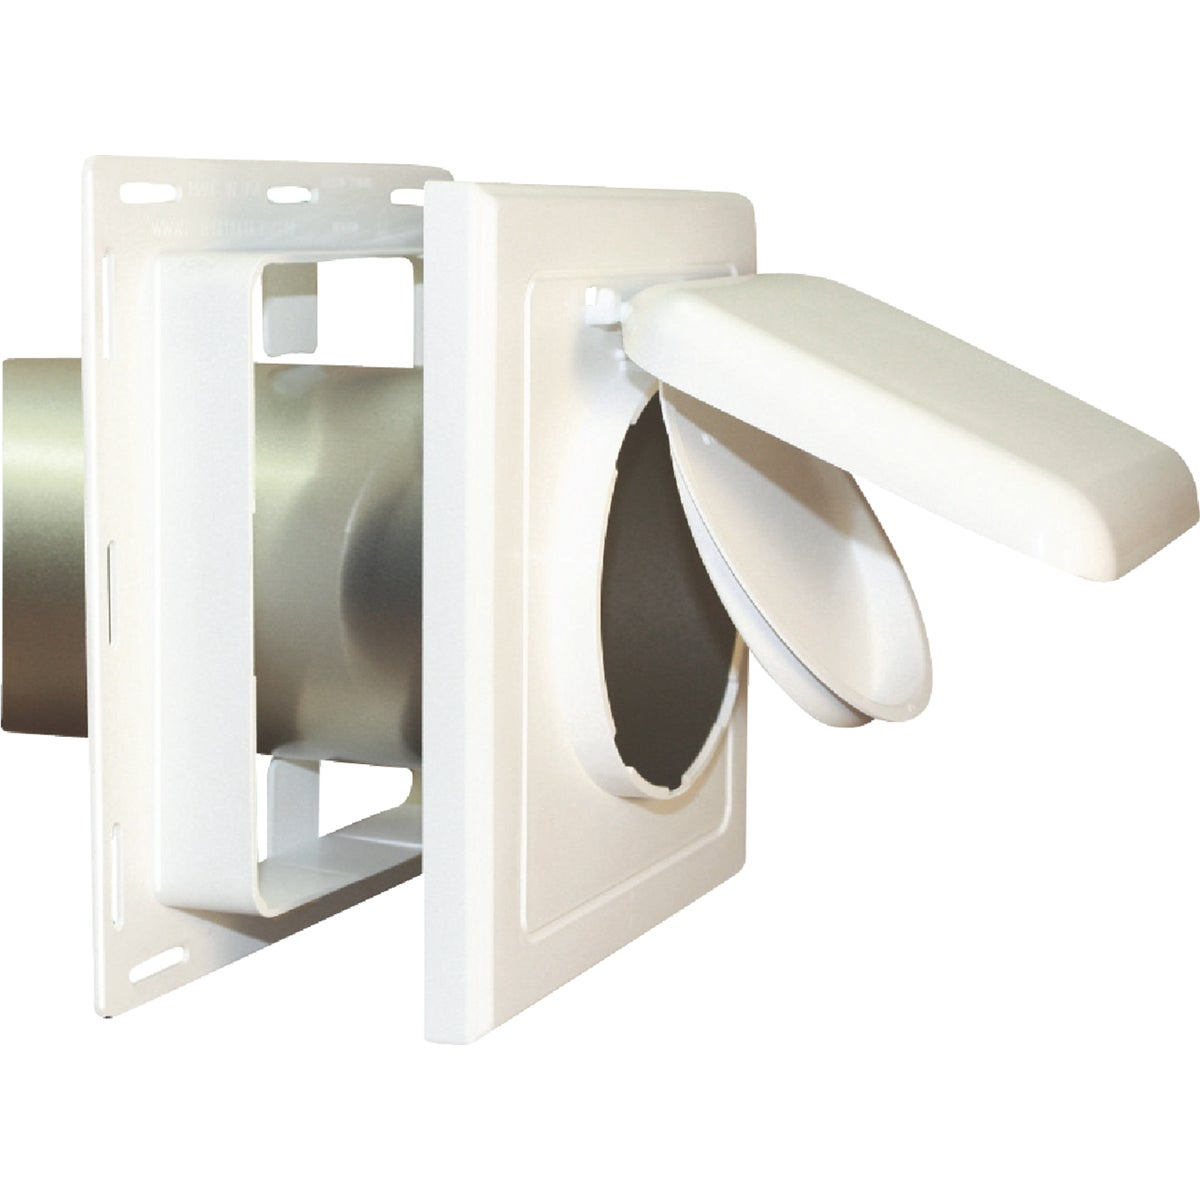 "4"" WT JBLOK NO PEST VENT - NPJW by P Tec Products Inc"